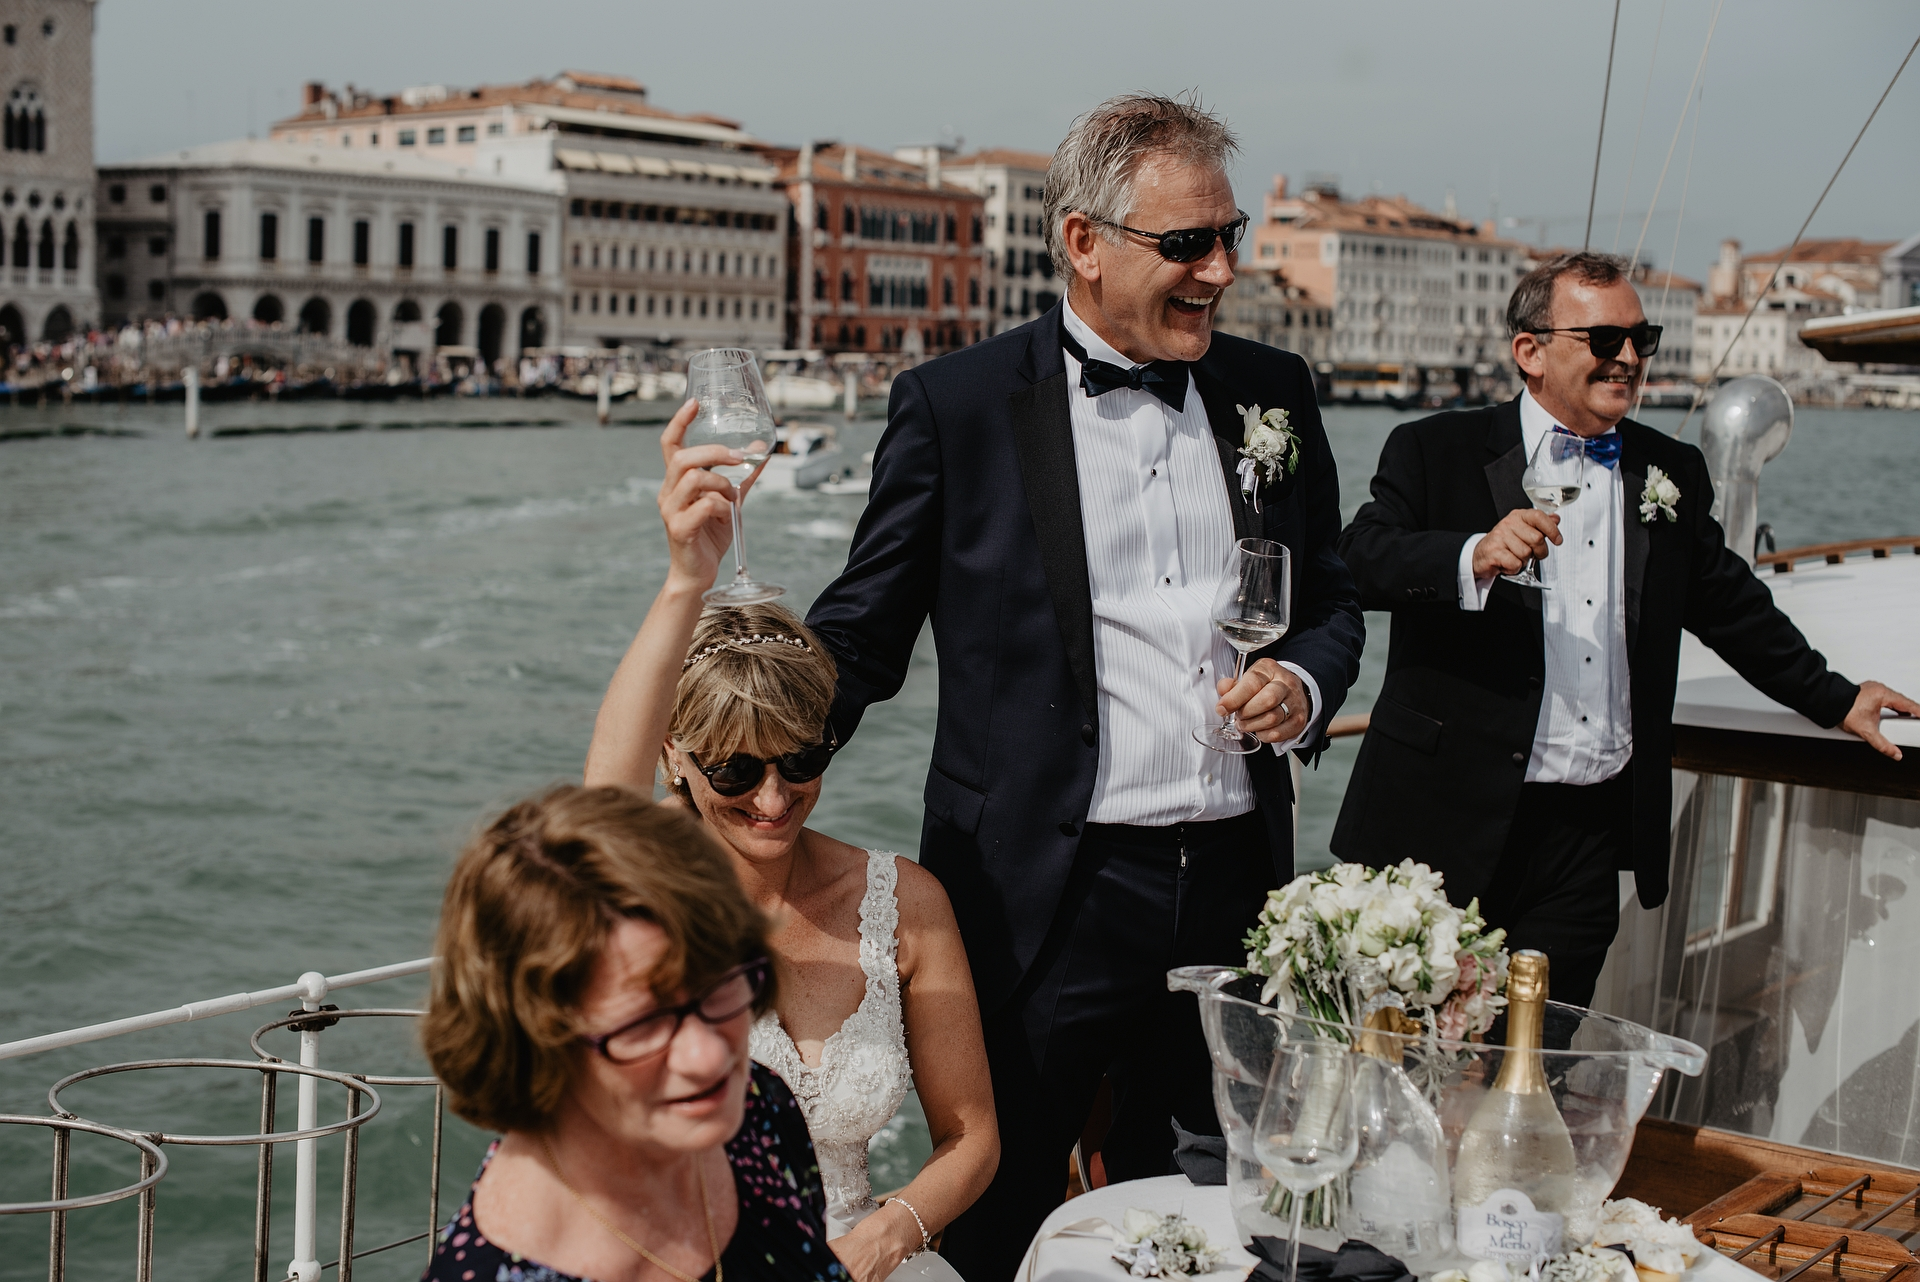 Venice Lagoon Elopement Image from a Private Boat | There were many moments onboard the Silver Yacht sailboat